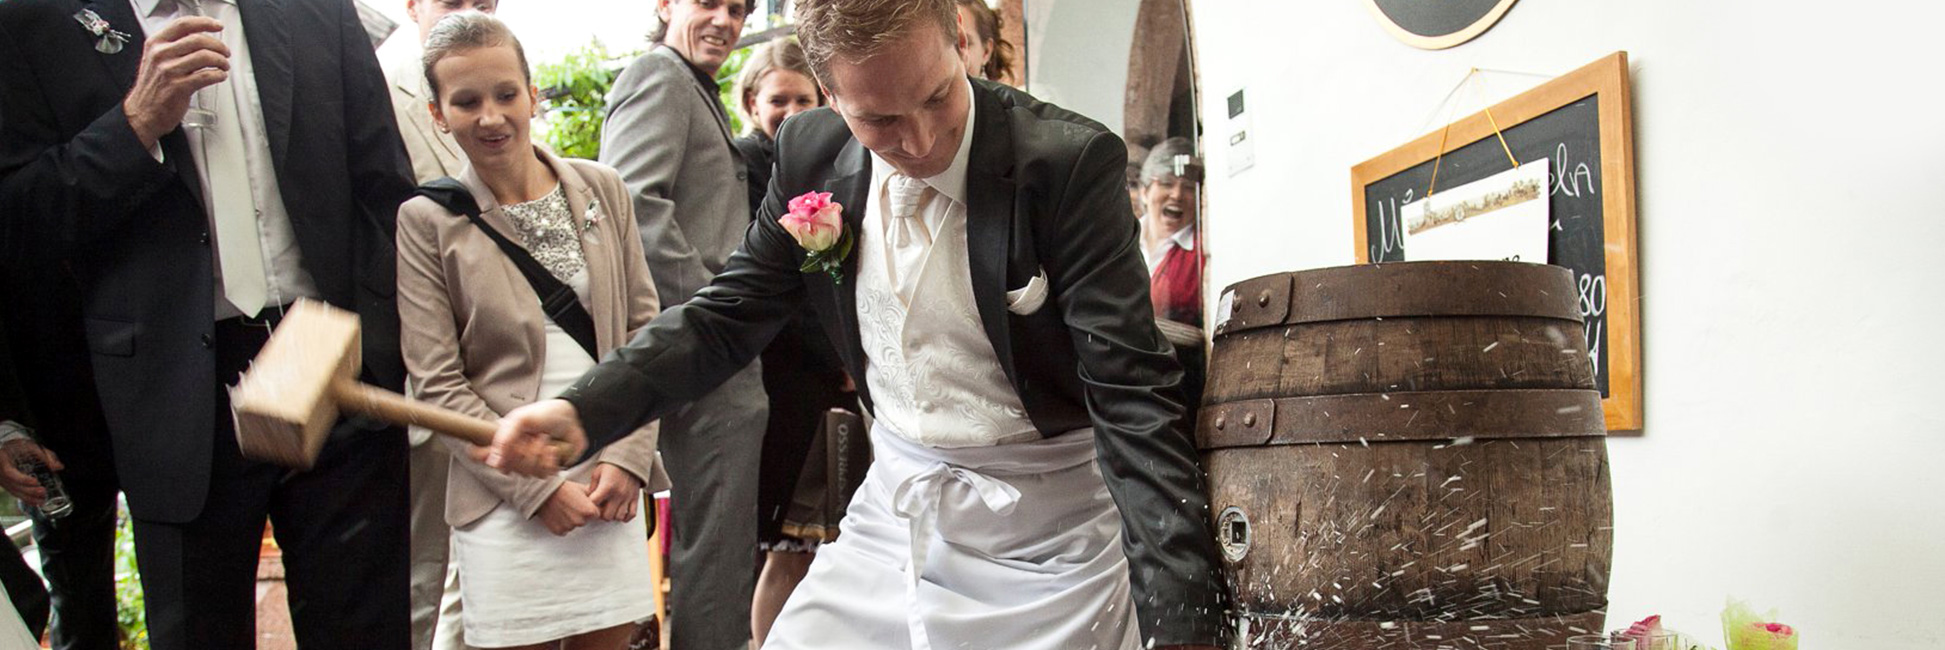 Hotel Gasthof zur Post wedding keg tapping